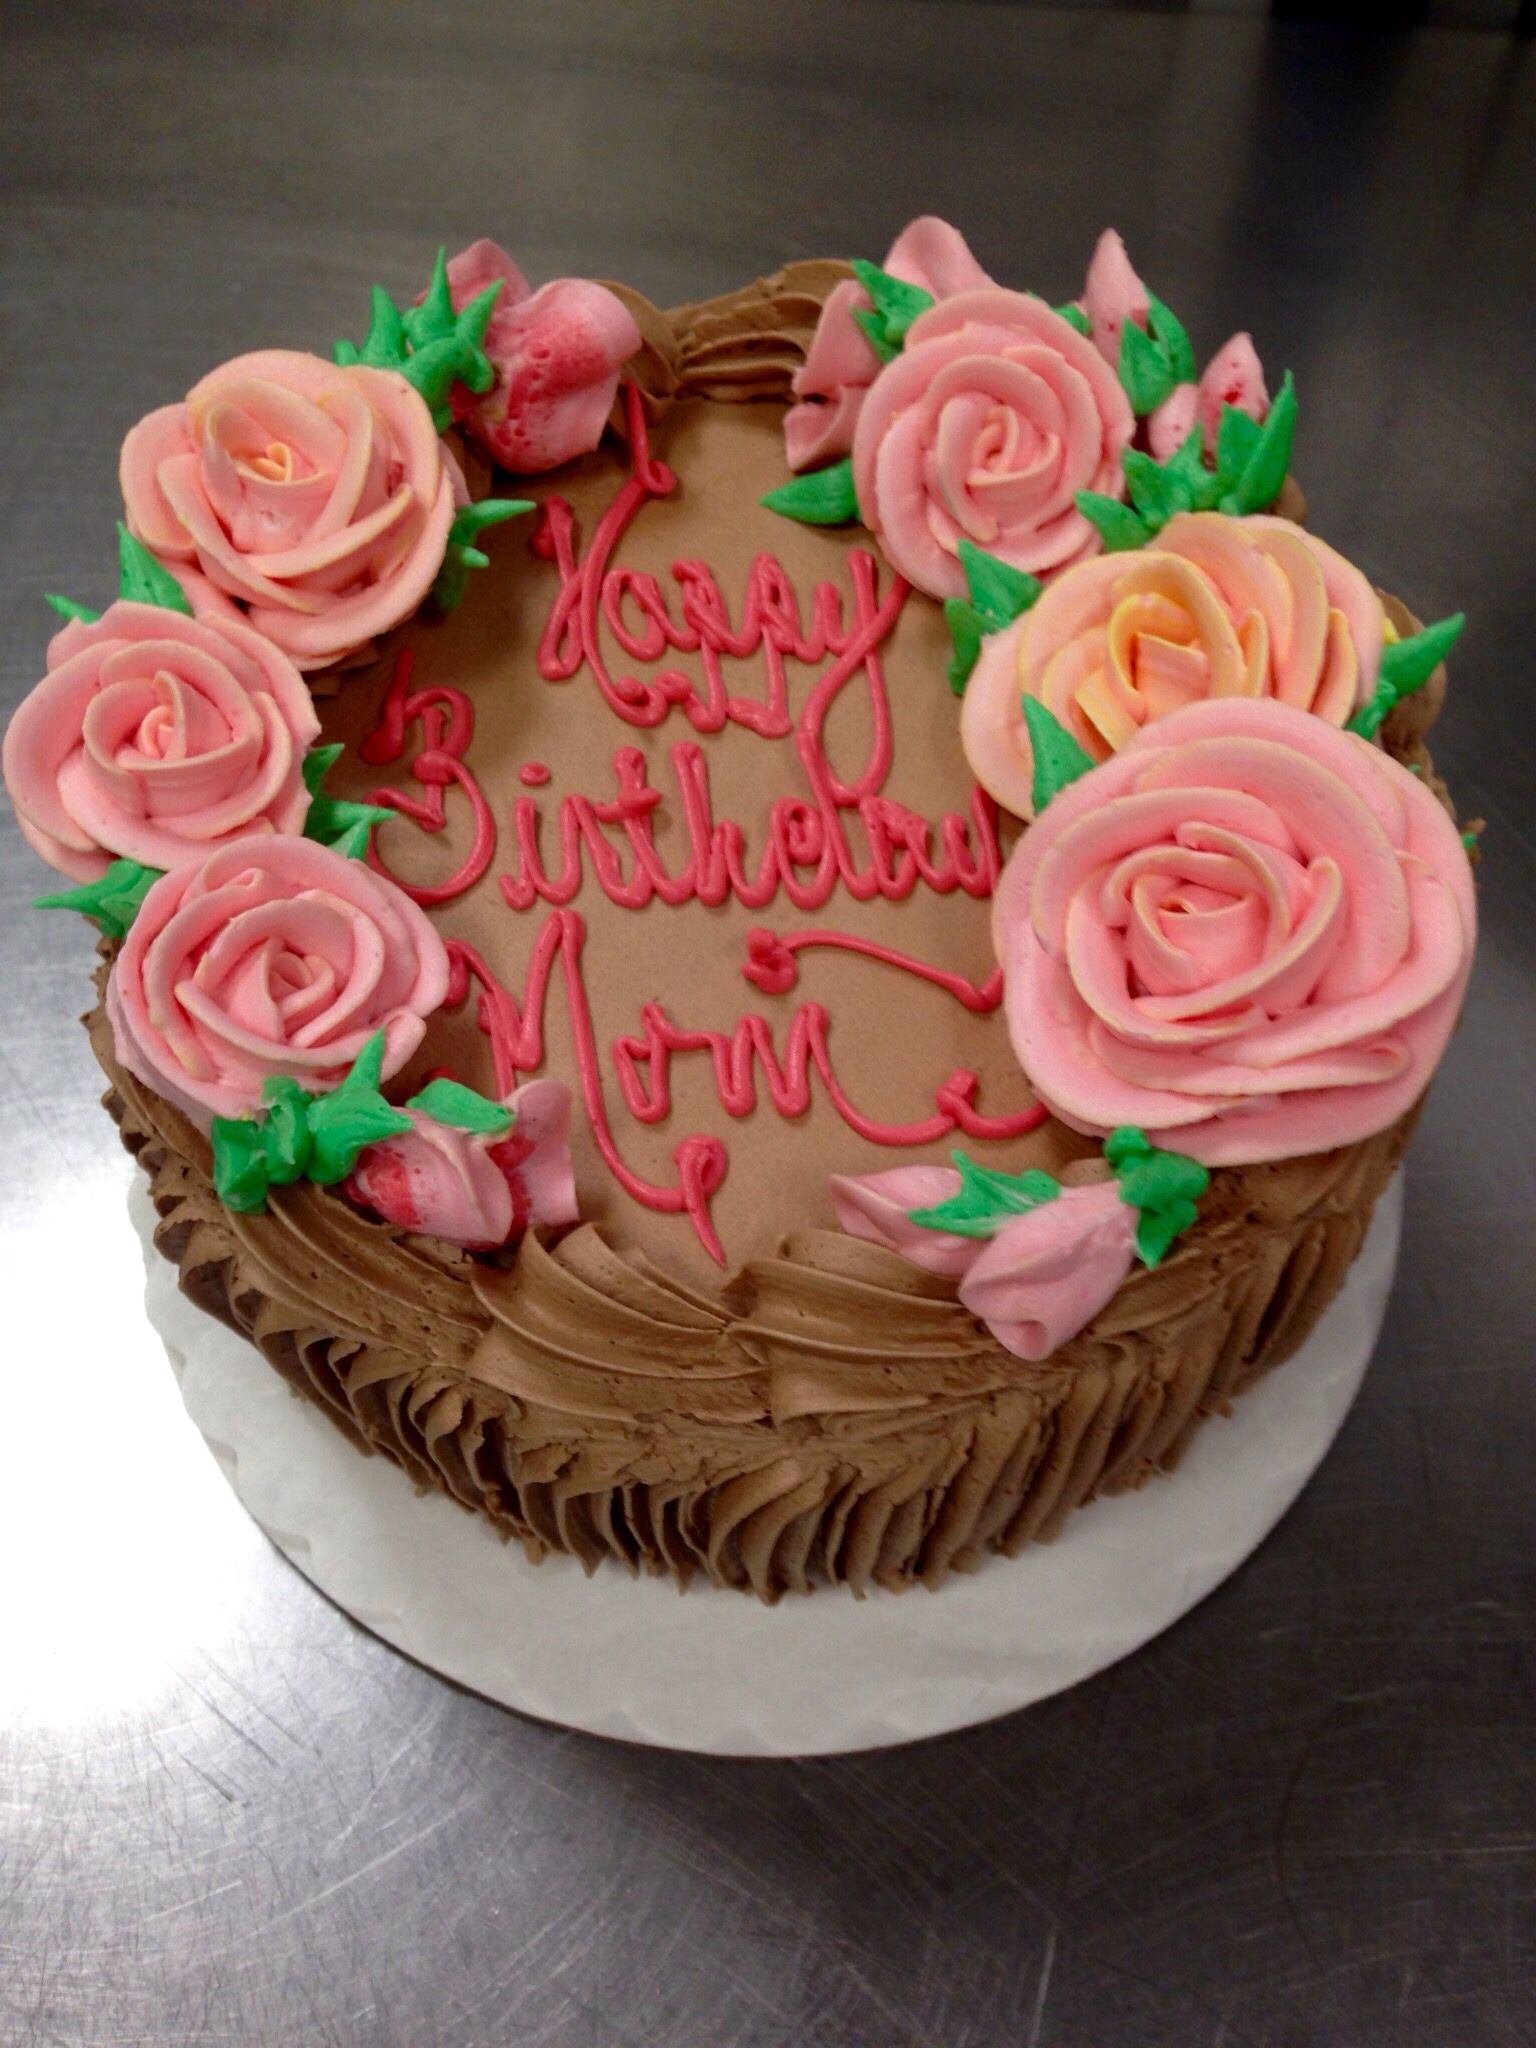 A little cake with pink coral color roses just for mom